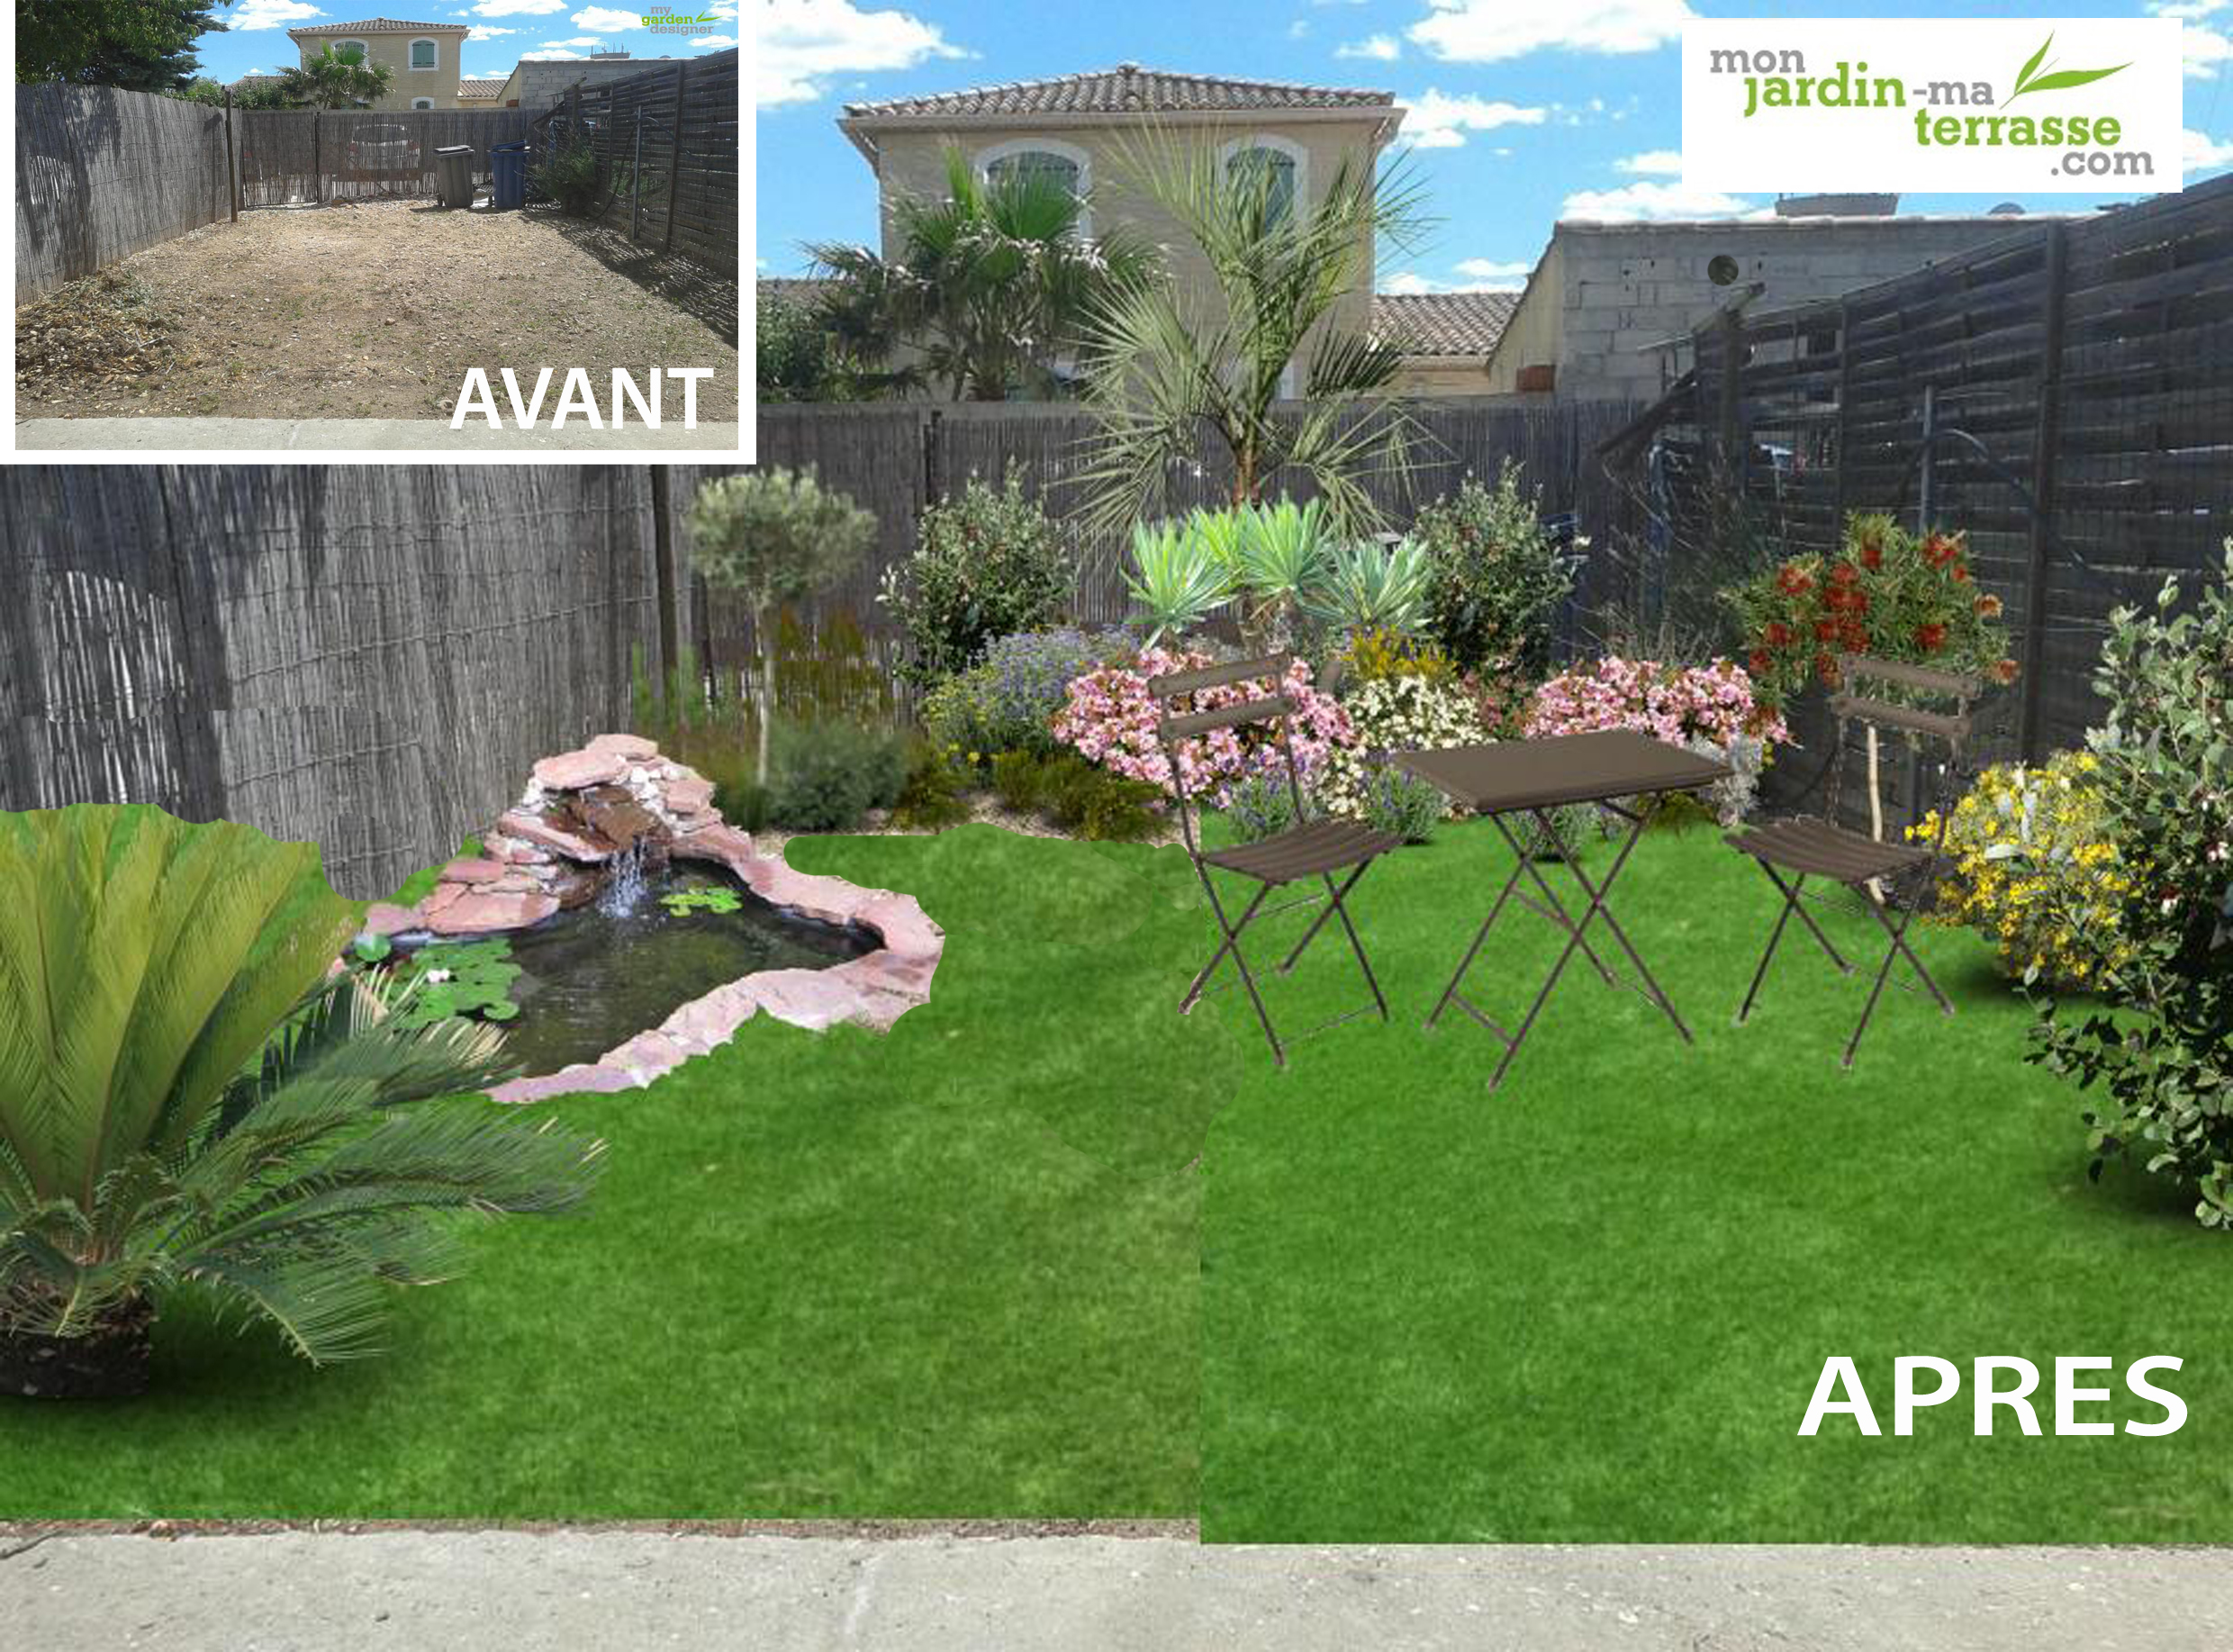 Id e d am nagement d un petit jardin monjardin for Idees de creation de jardin